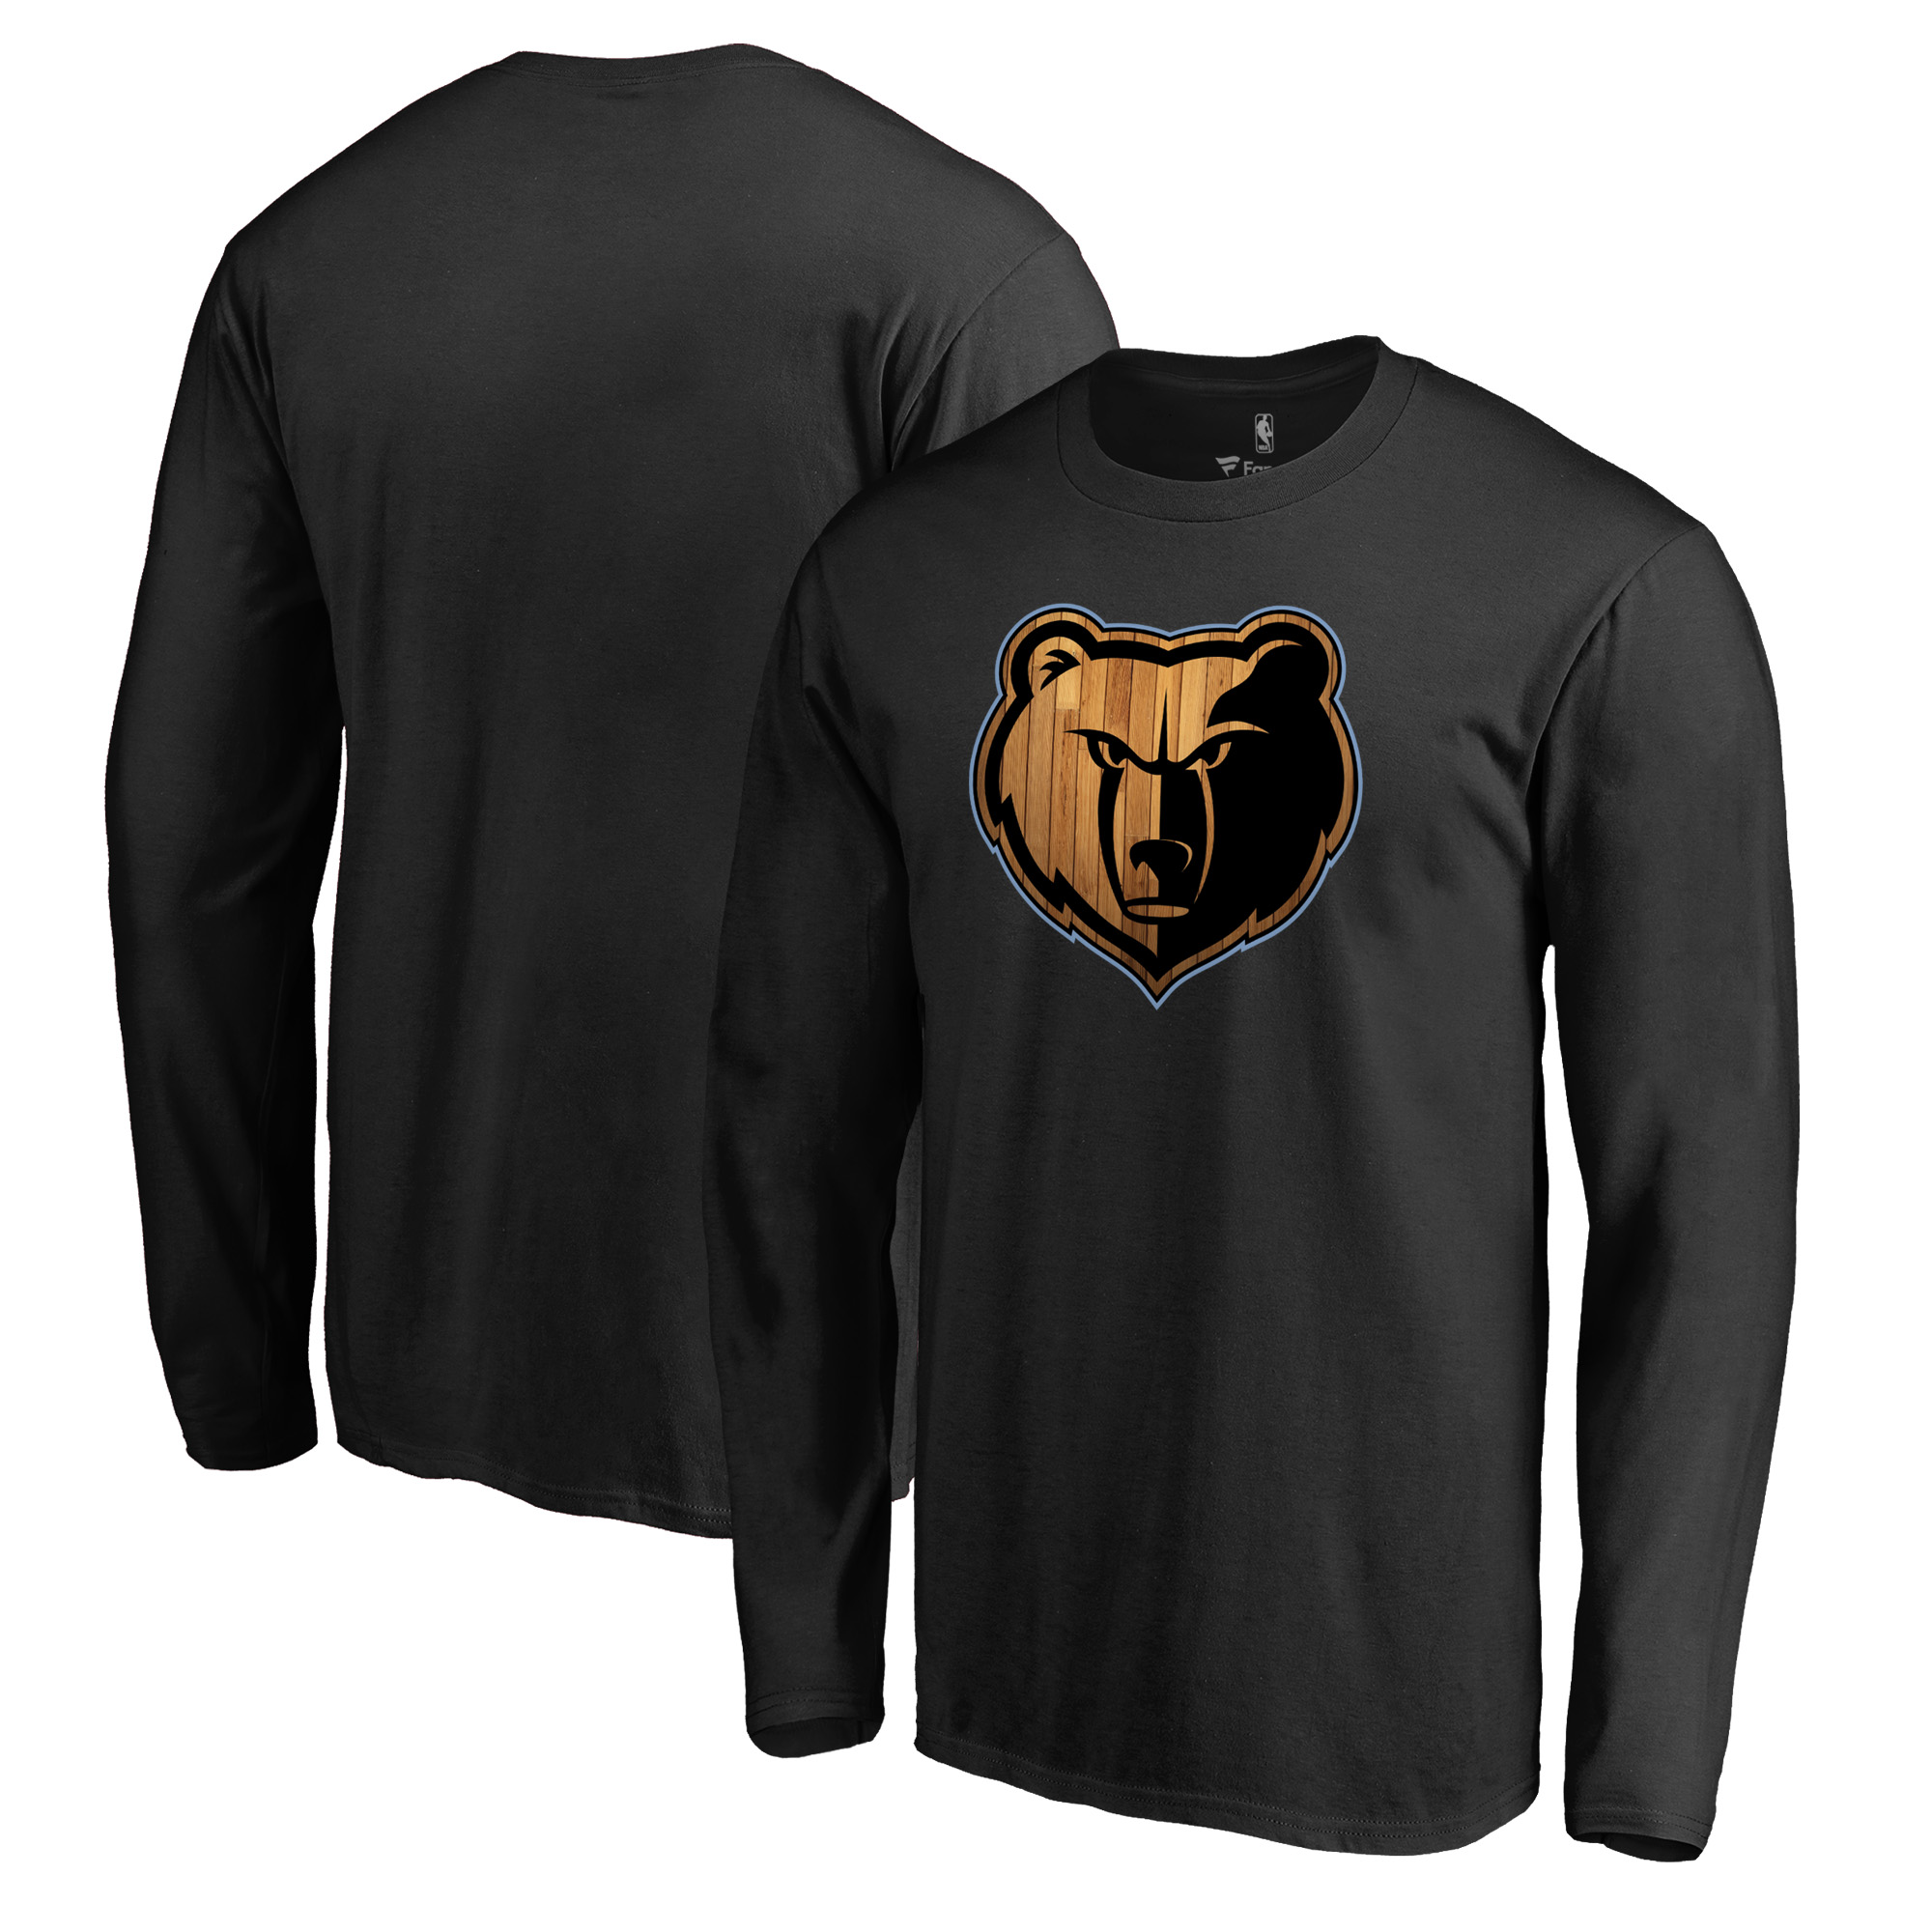 Memphis Grizzlies Fanatics Branded Hardwood Long Sleeve T-Shirt - Black